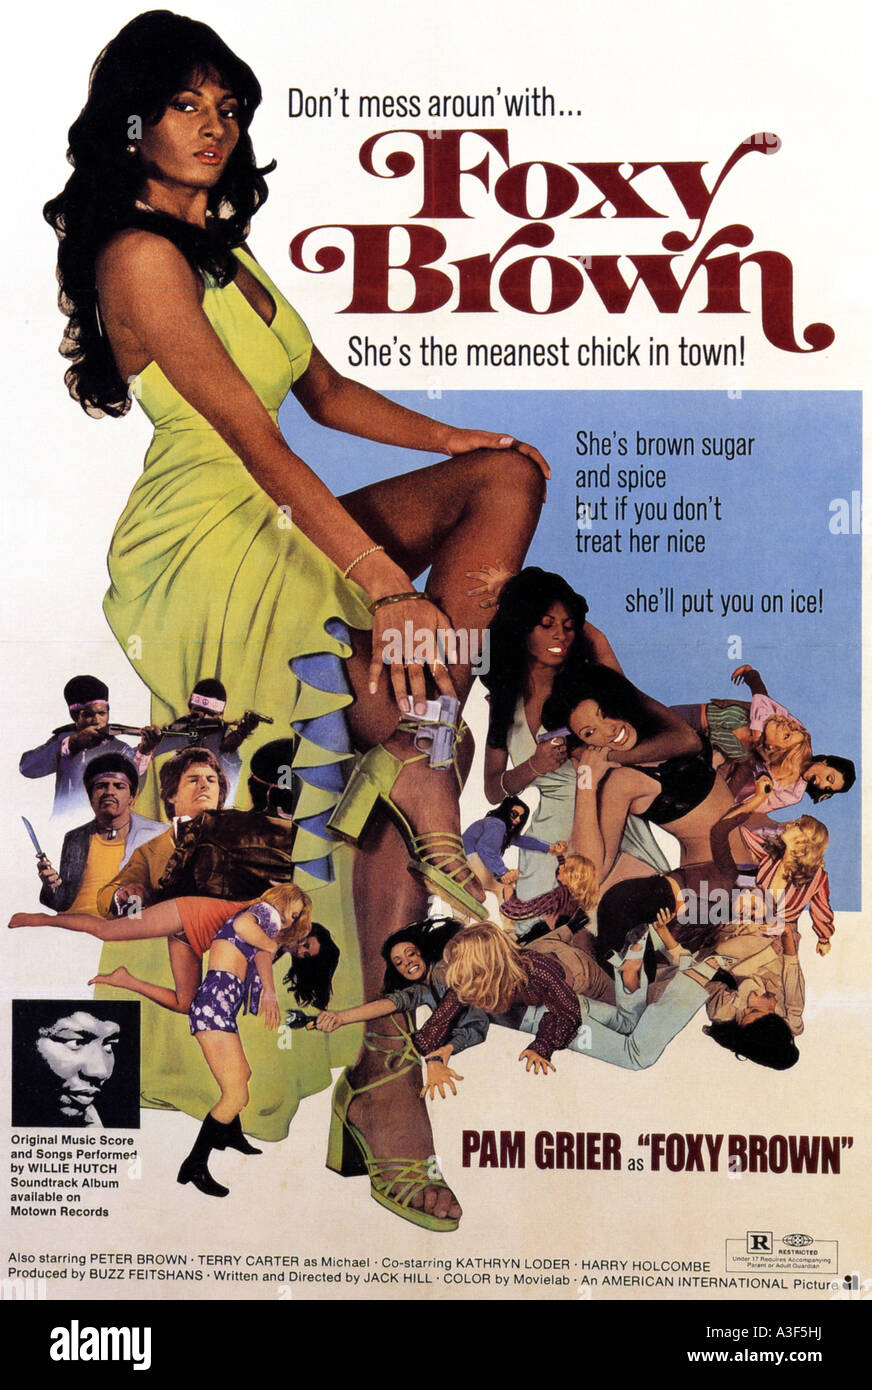 FOXY BROWN poster for 1974 AIP film with Pam Grier - Stock Image